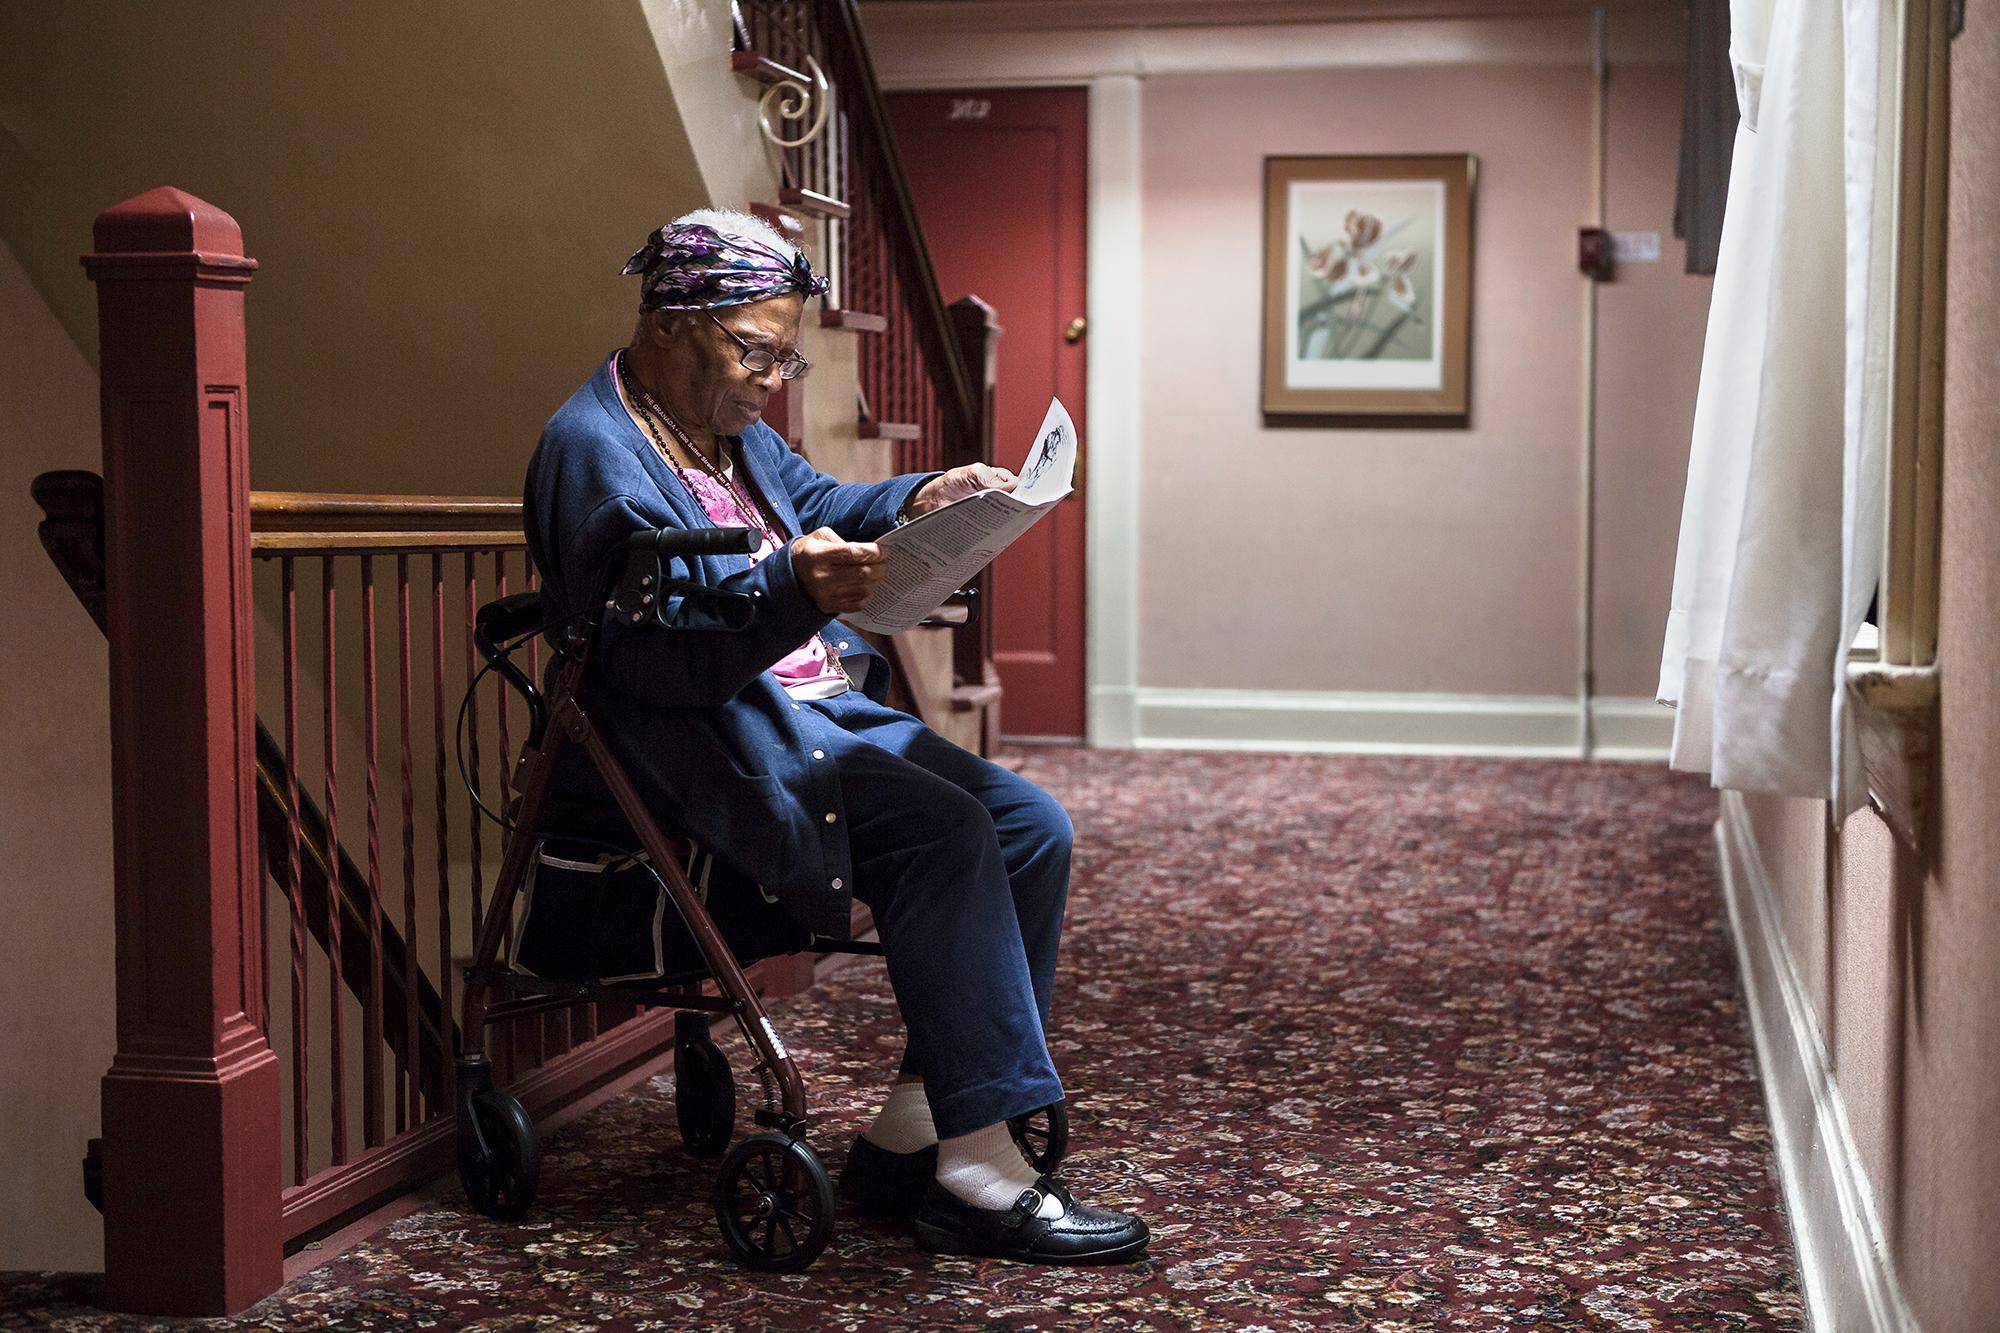 Carrie Doyle reads the newspaper sitting on her walking frame in a hallway at The Granada Hotel on Thursday, October 15, 2015, in San Francisco, California.